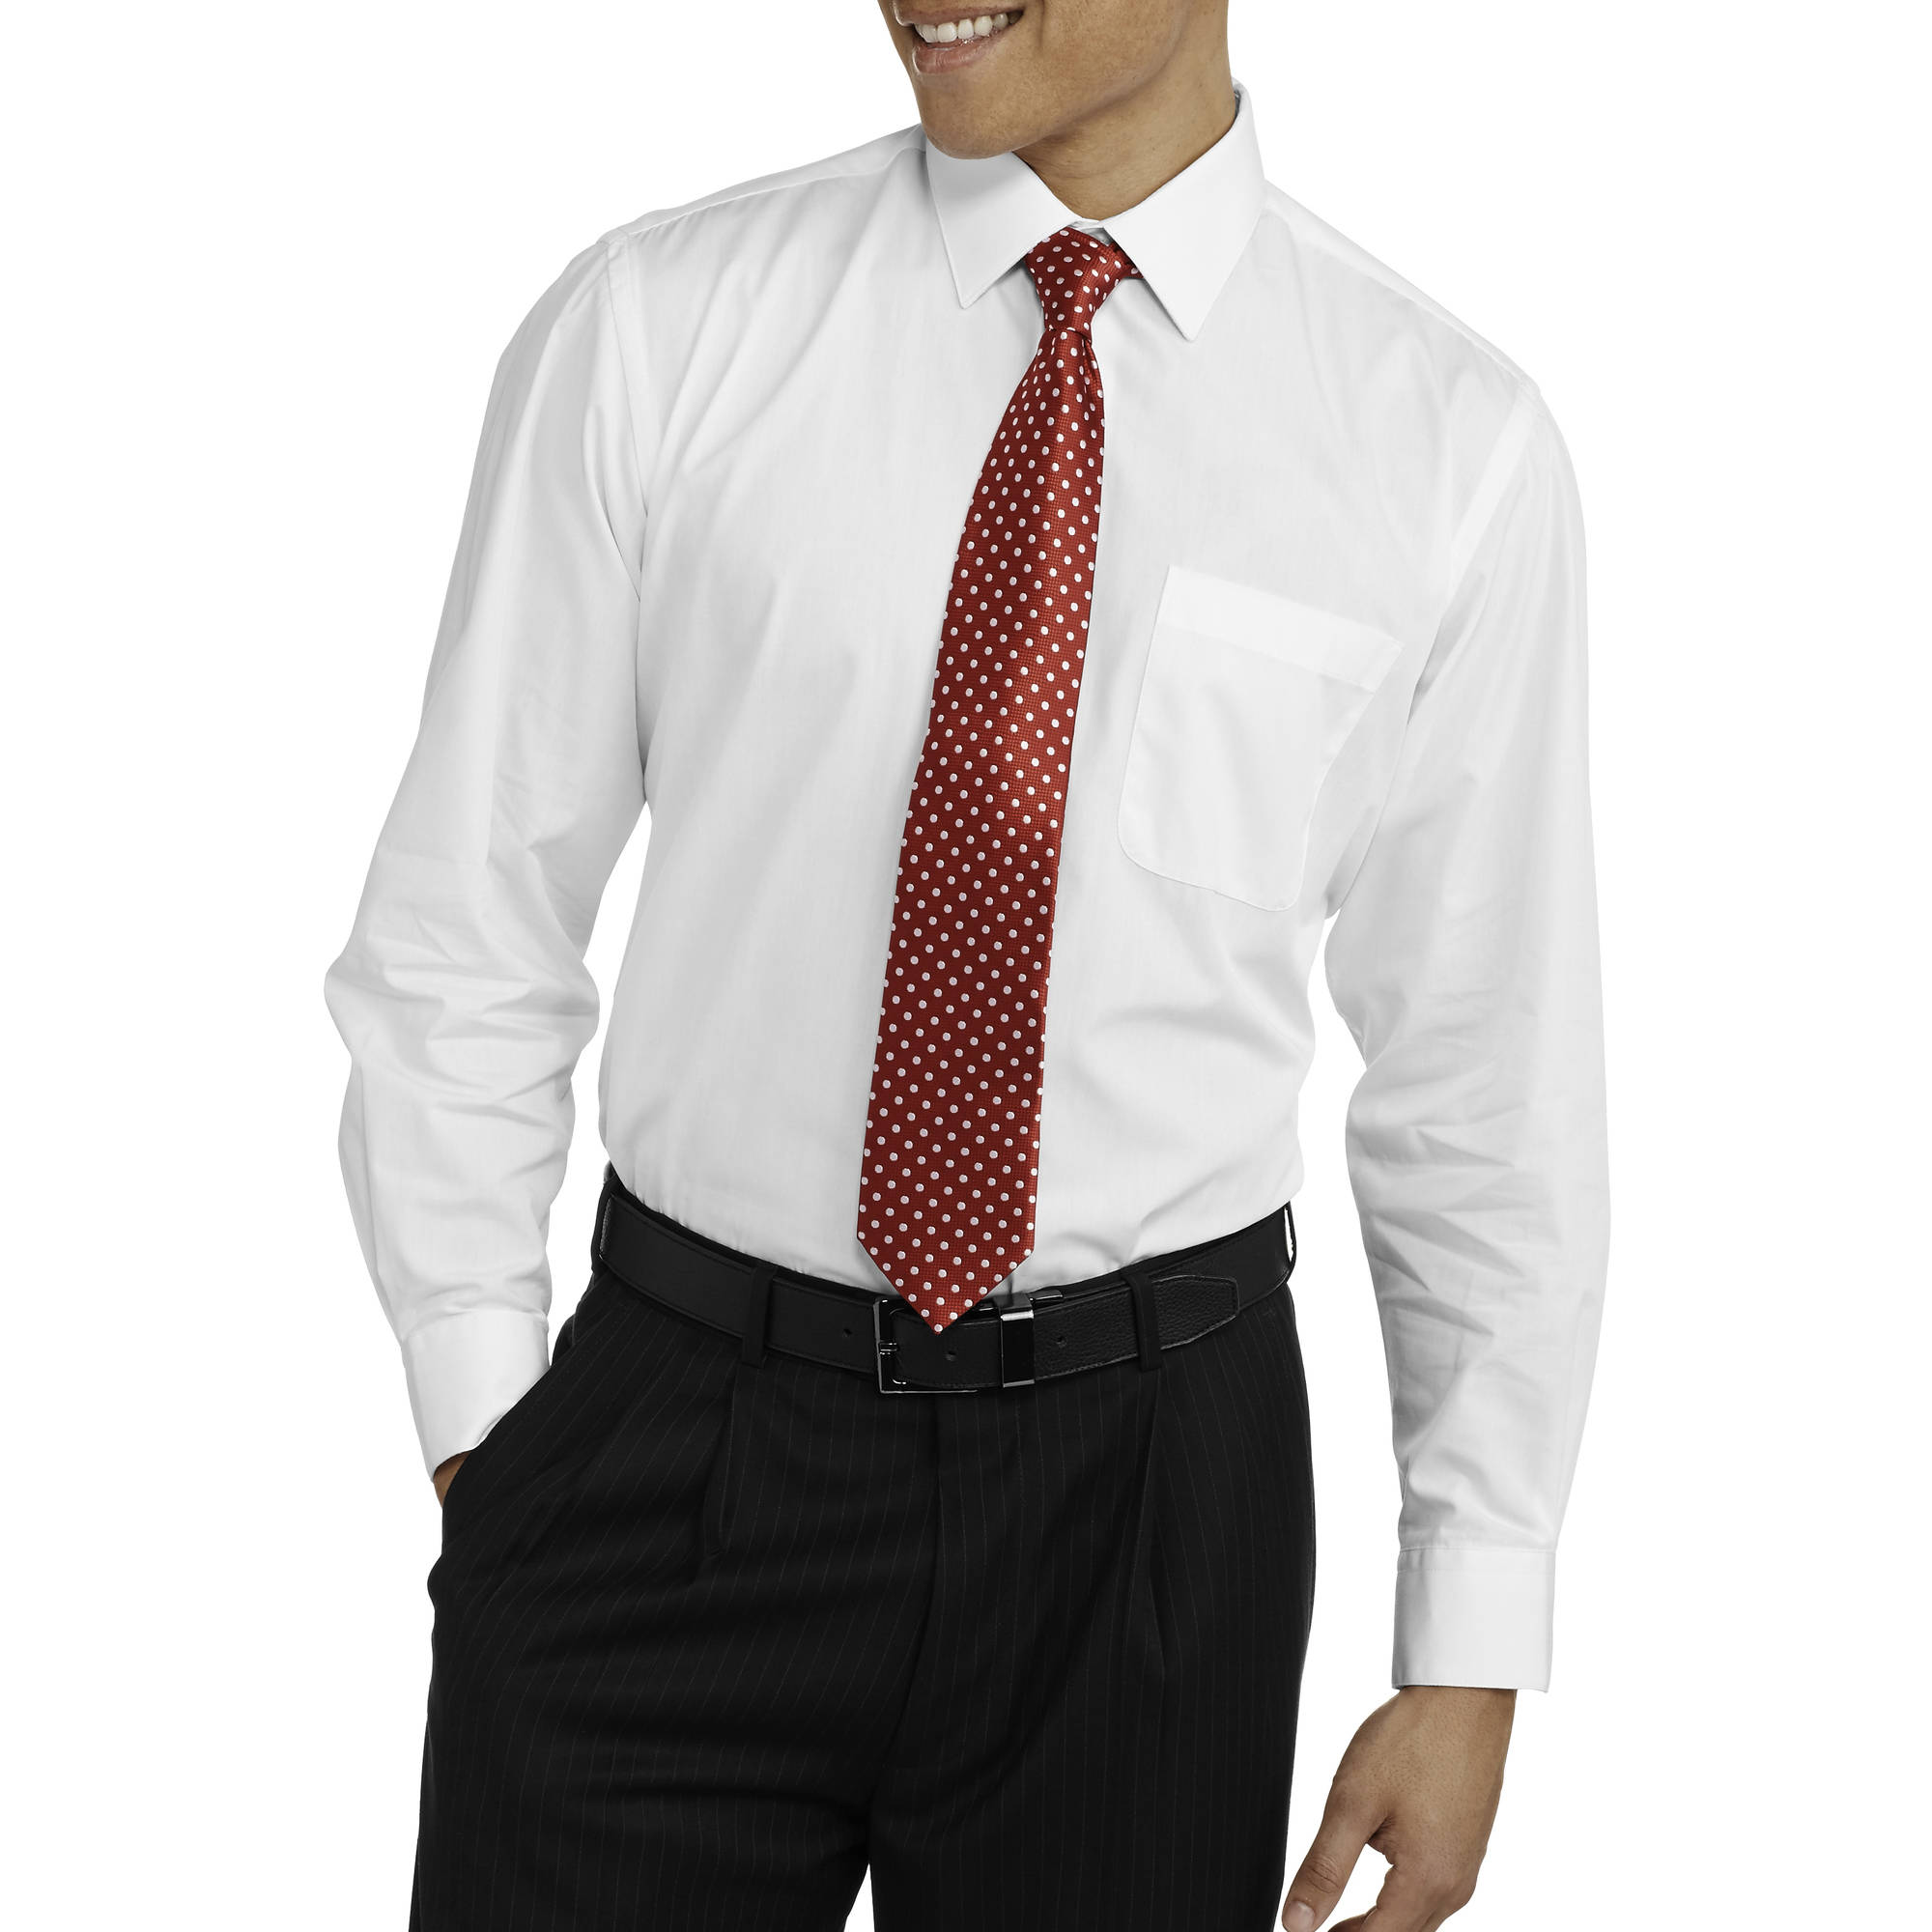 big s packaged sleeve dress shirt and 2 ties set